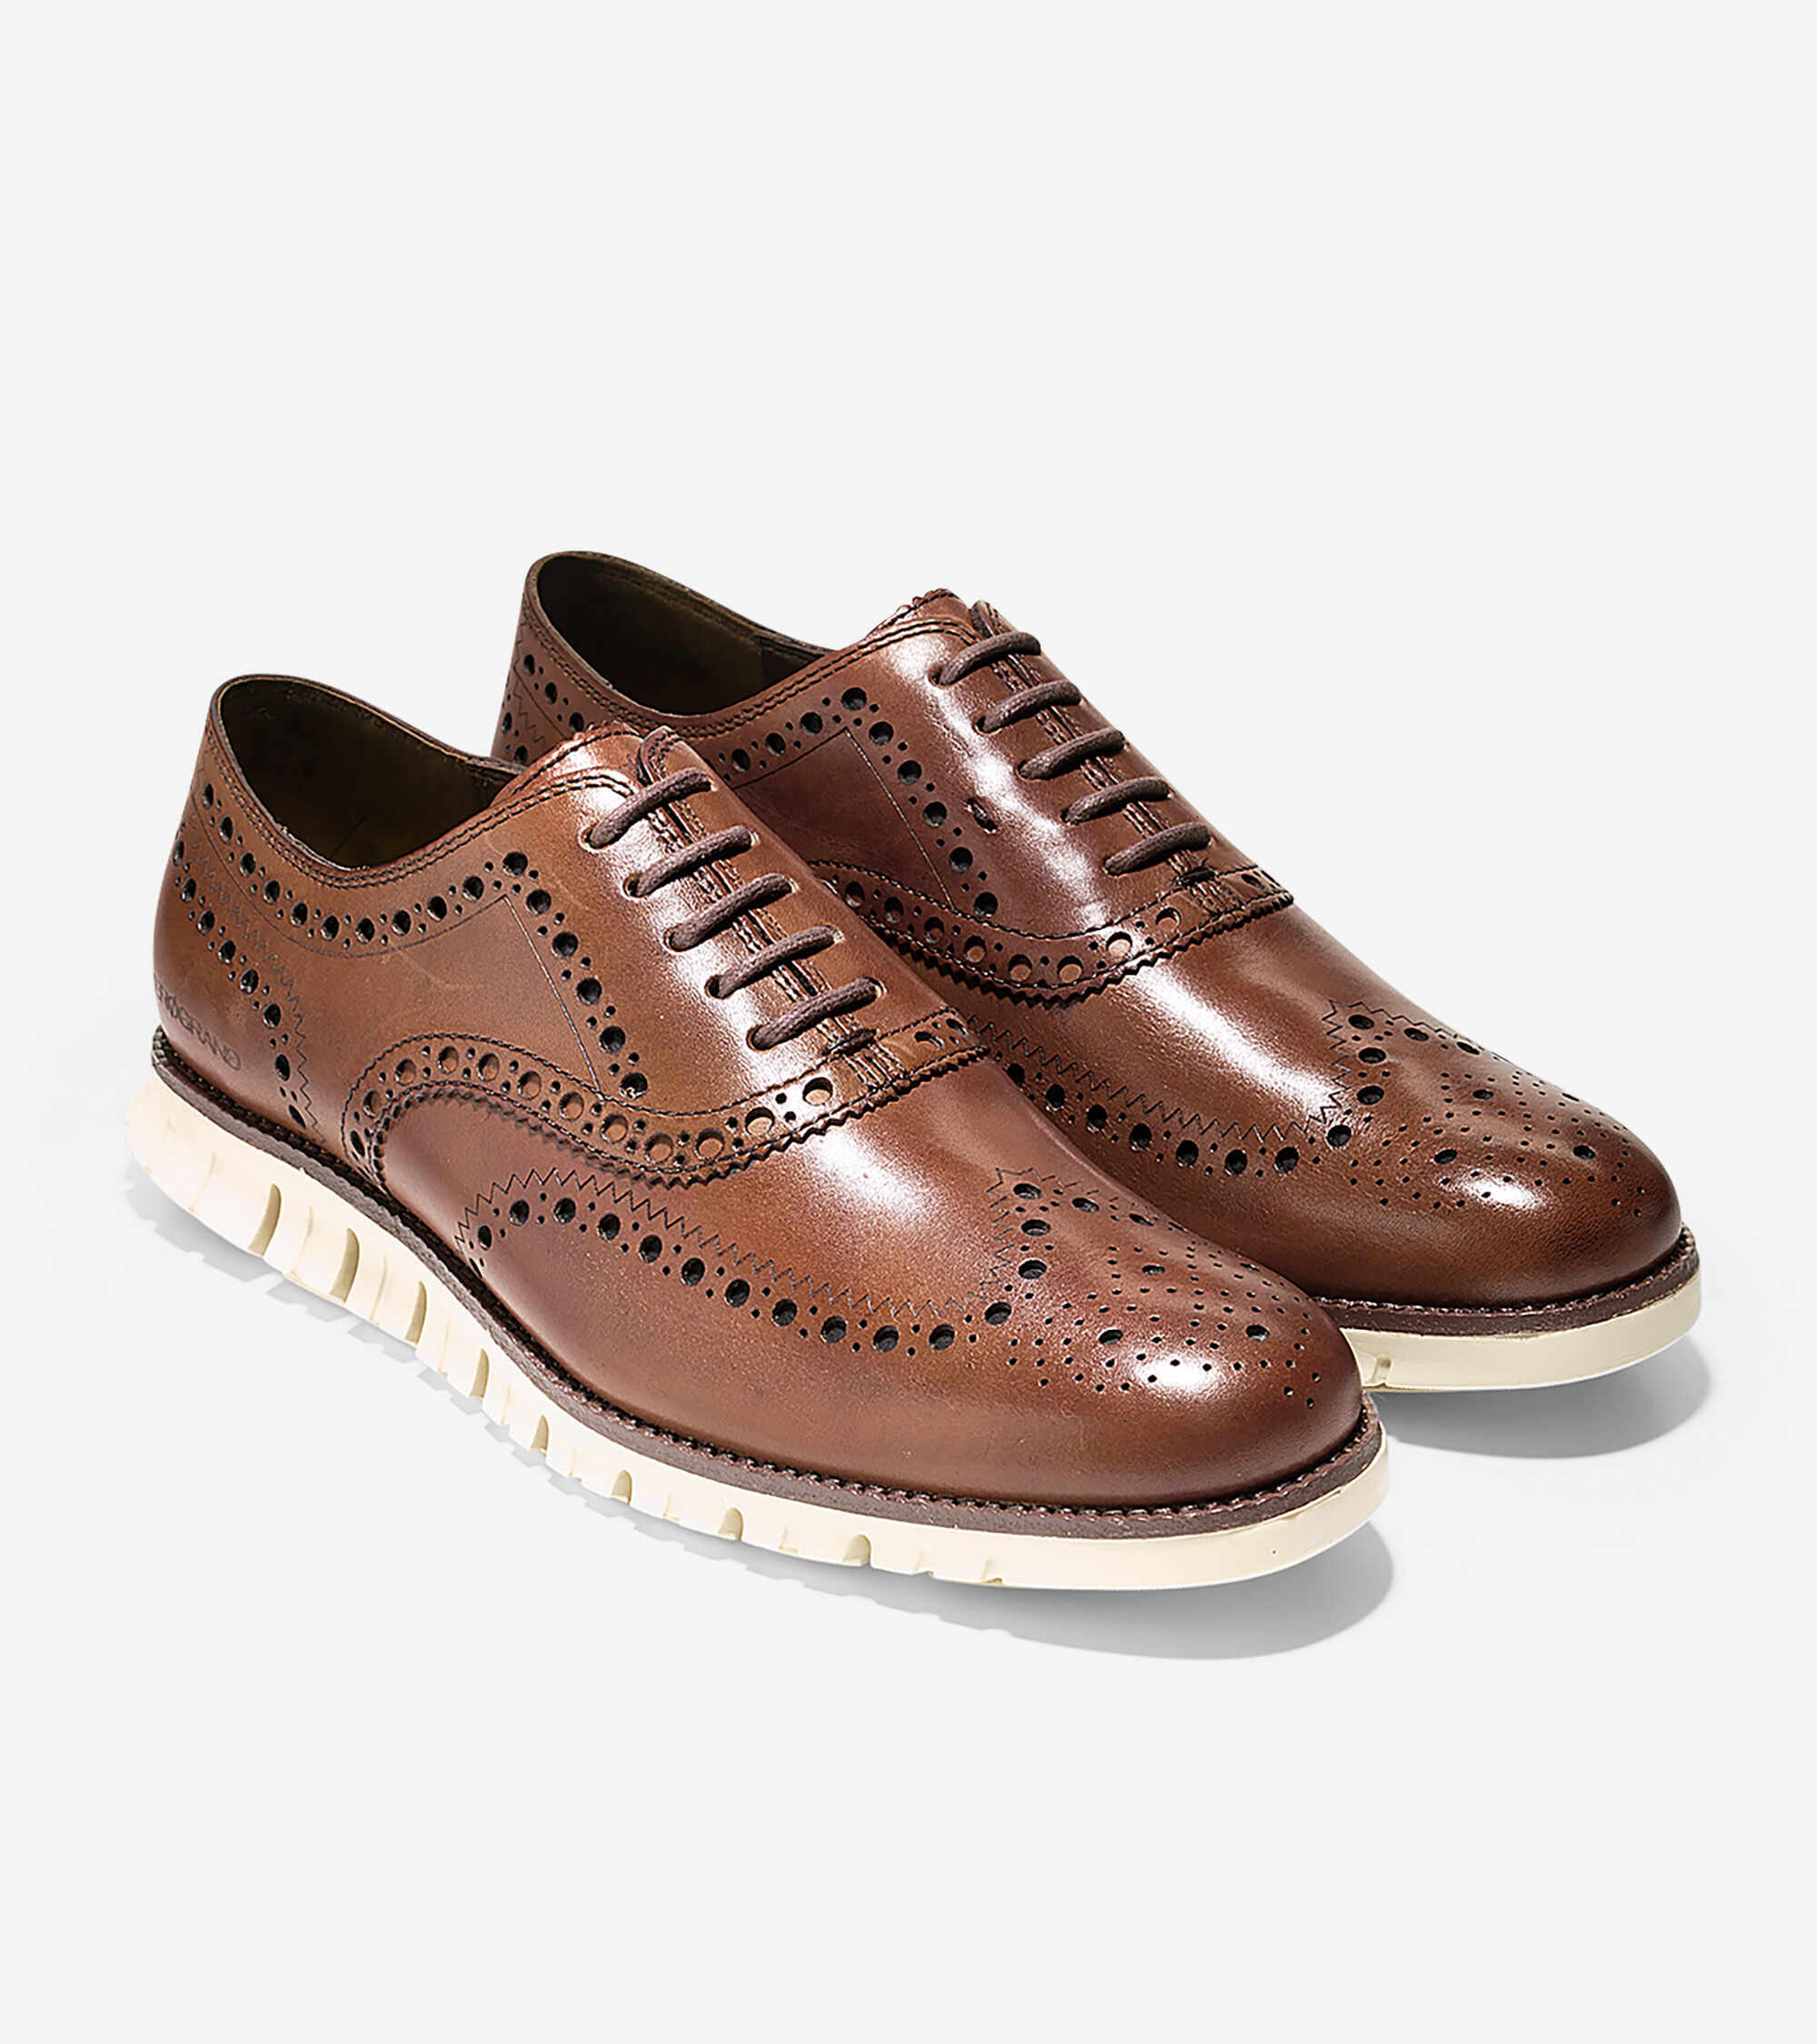 ... Men's ZERØGRAND Wingtip Oxford; Men's ZERØGRAND Wingtip Oxford. # colehaan